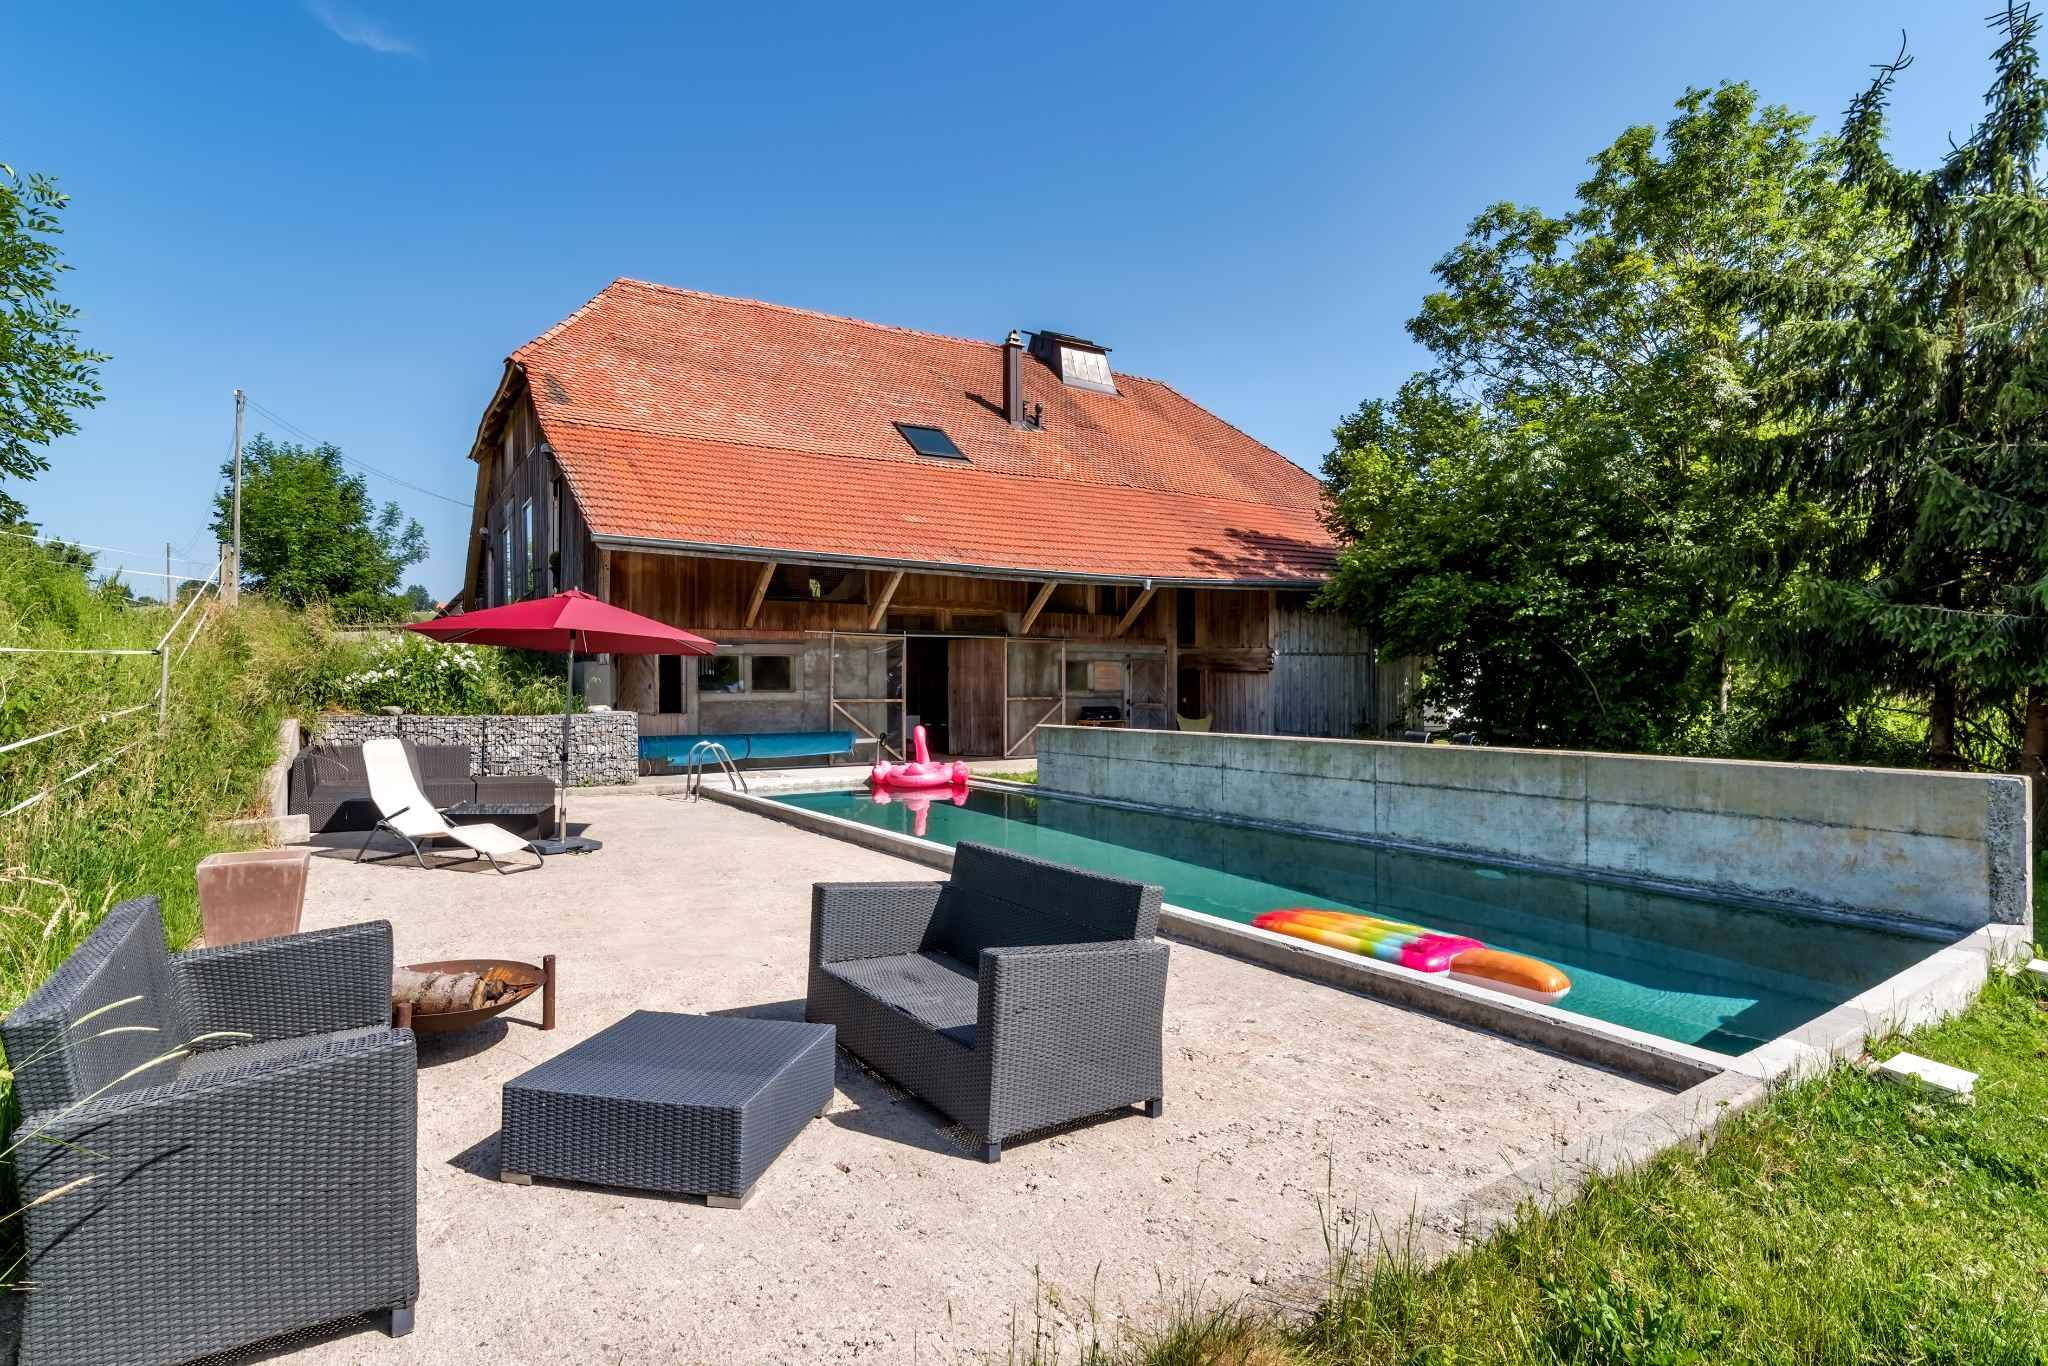 Renovated riding farm of 8.5 rooms with lofts